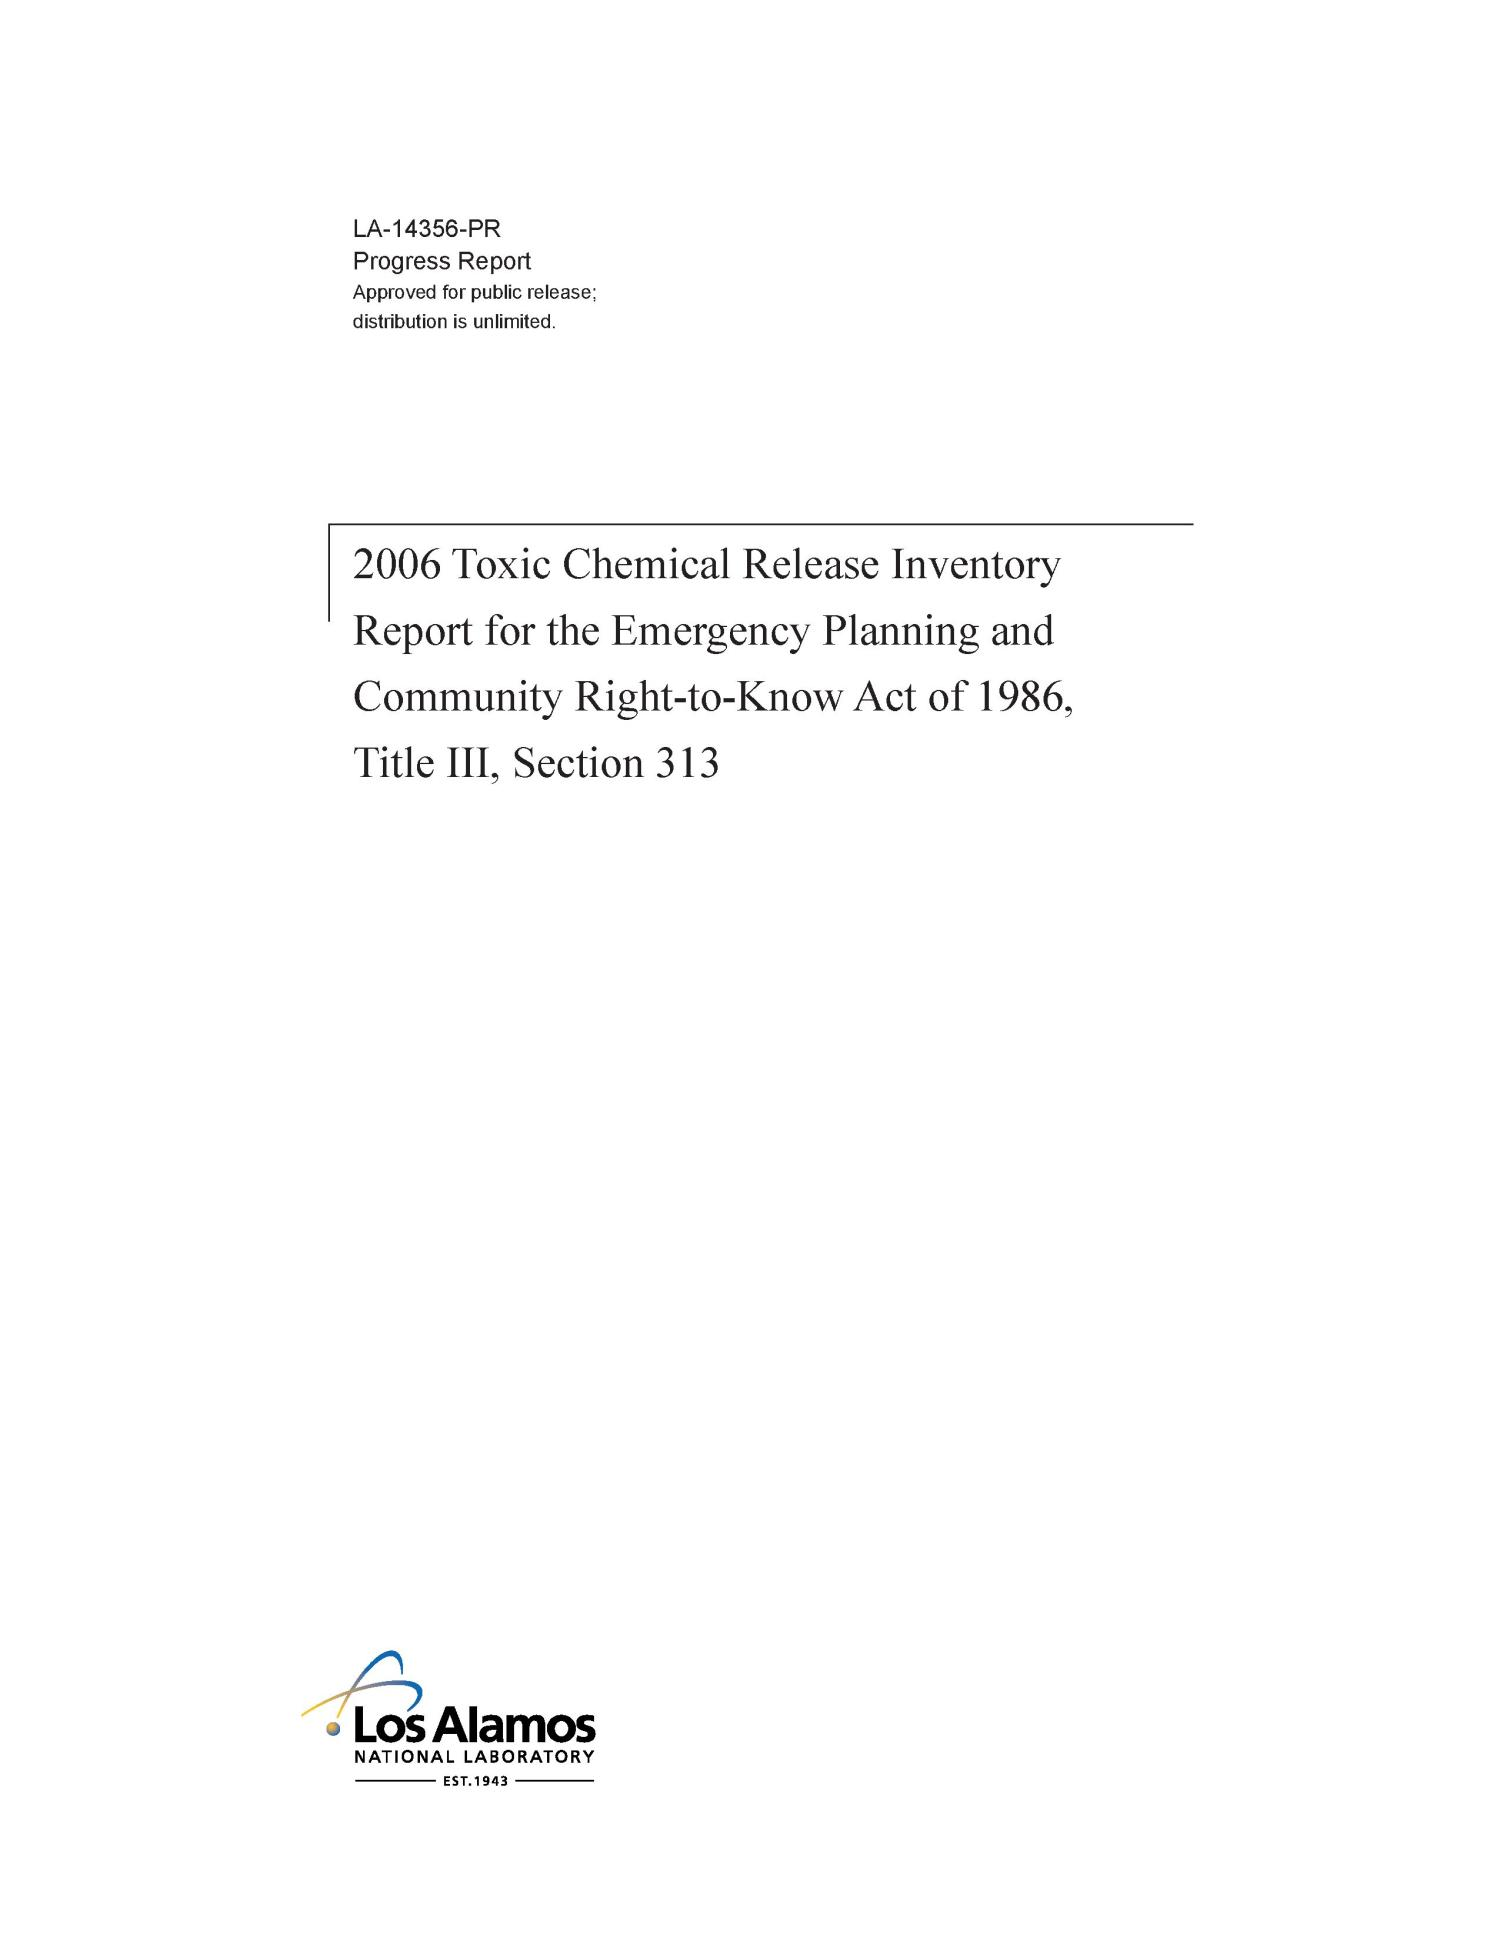 2006 Toxic Chemical Release Inventory Report for the Emergency Planning and Community Right-to-Know Act of 1986, Title III, Section 313                                                                                                      [Sequence #]: 1 of 60